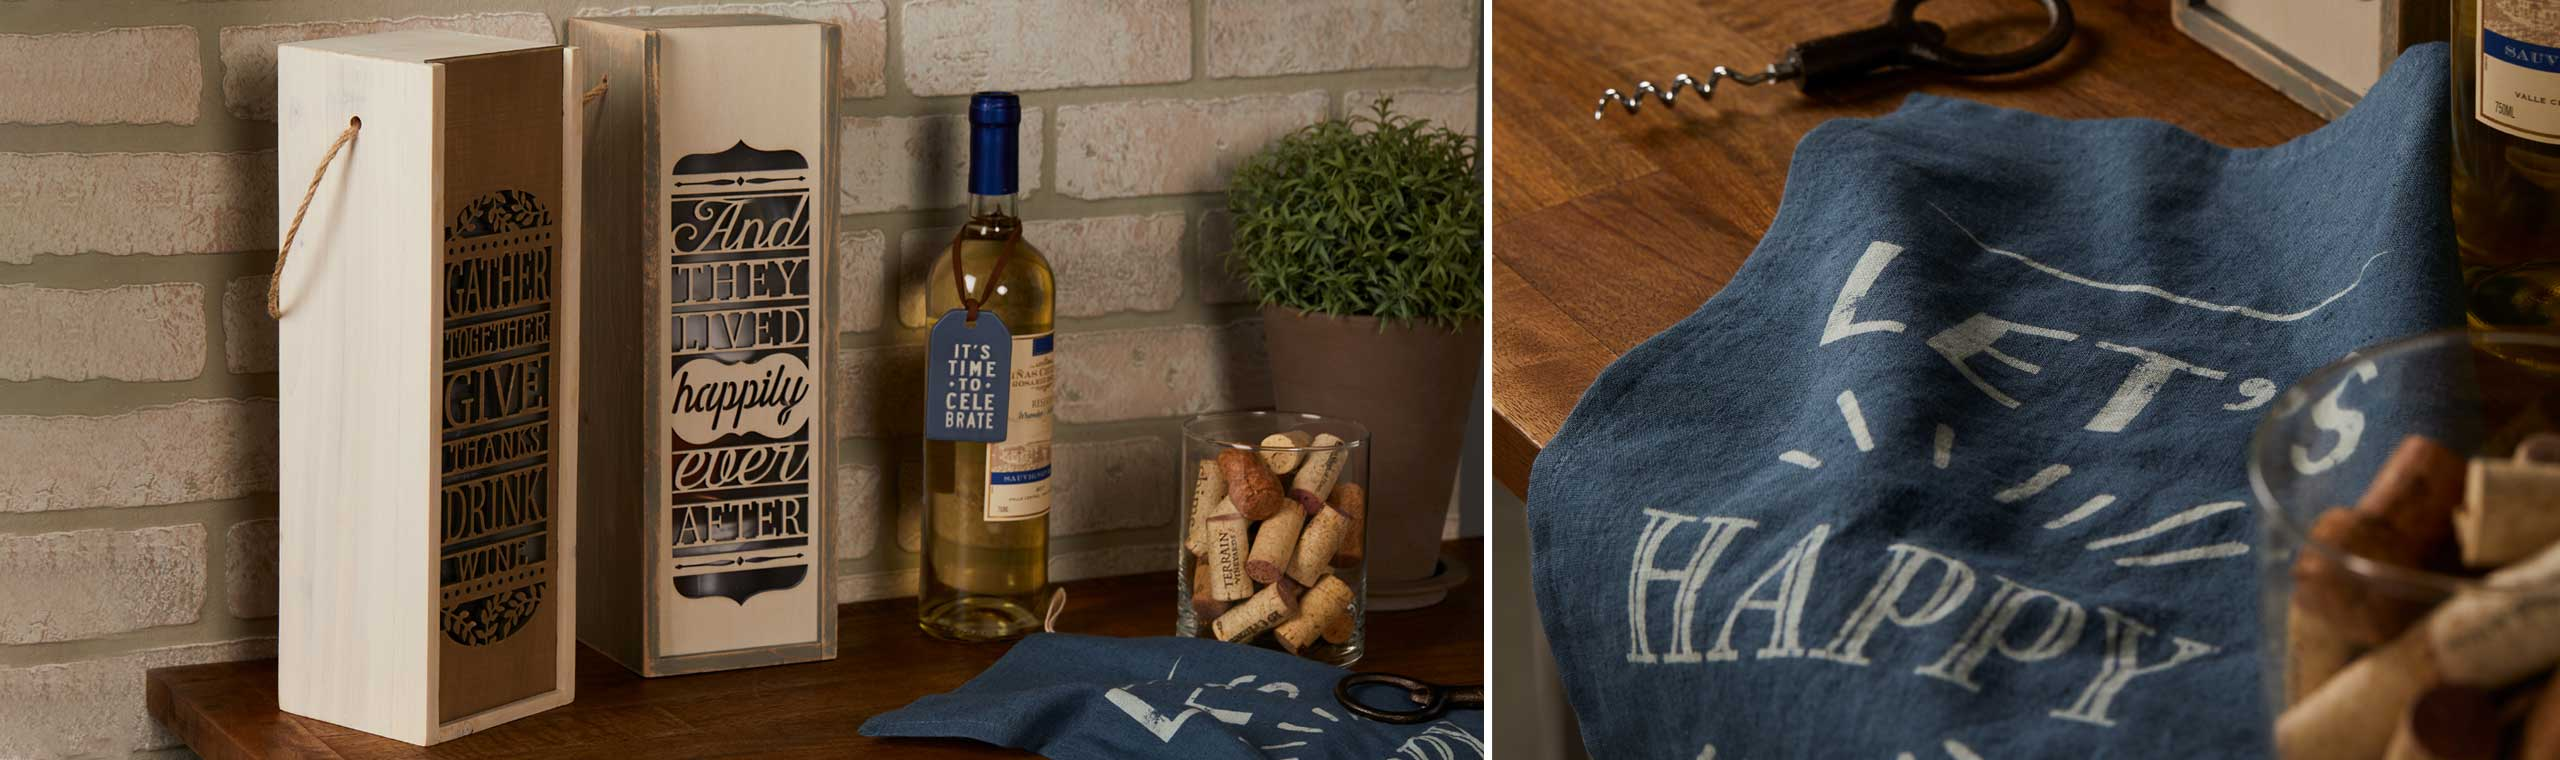 Wooden wine cases and a blue apron inpiring joy